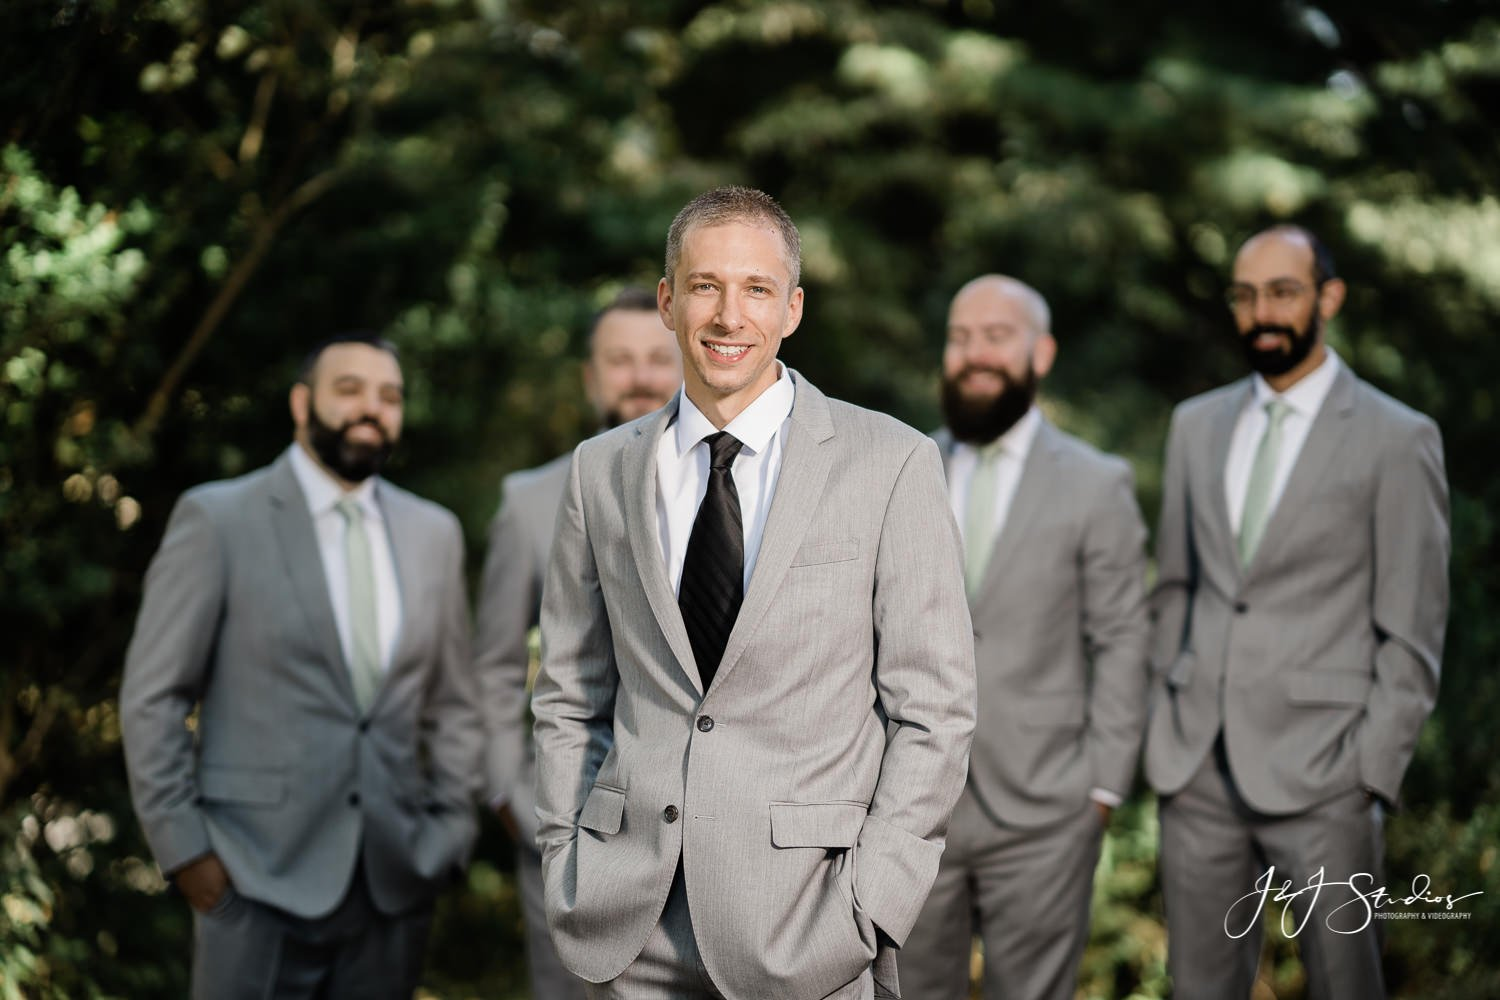 groom and groomsmen poses by john ryan J&J Studios